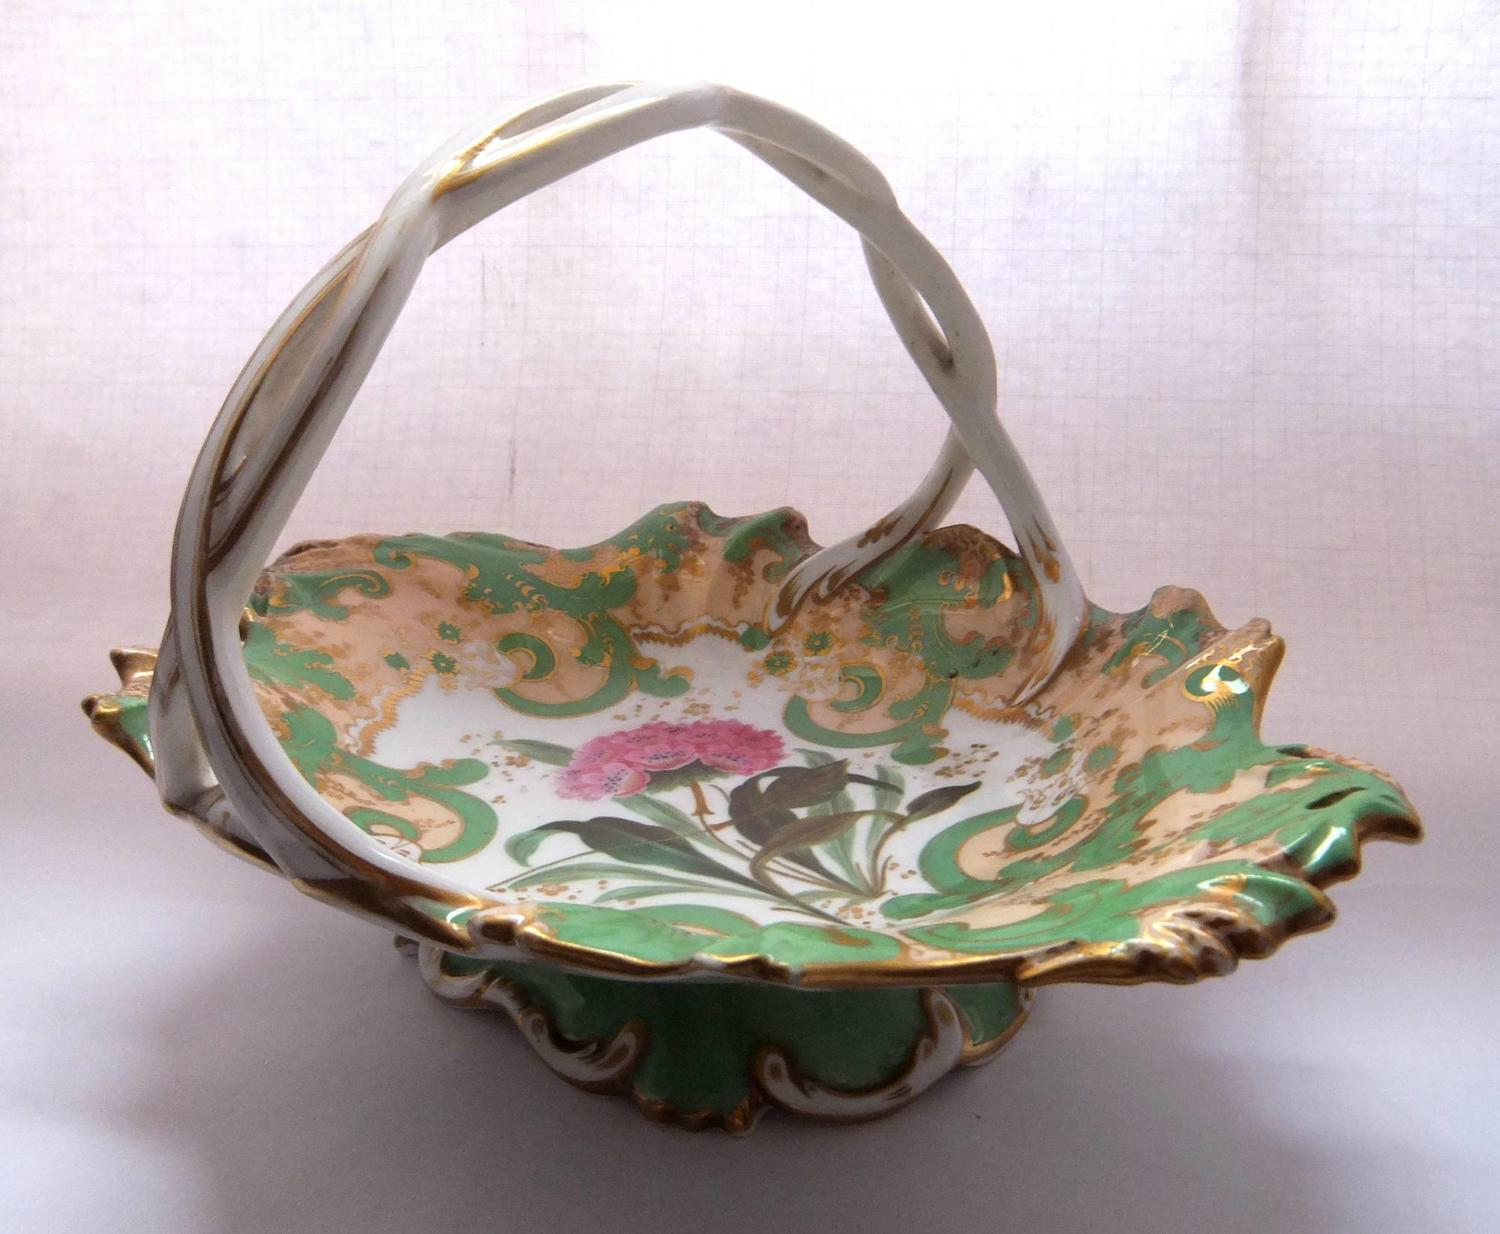 A Hand Painted Botanical Porcelain Basket circa 1830